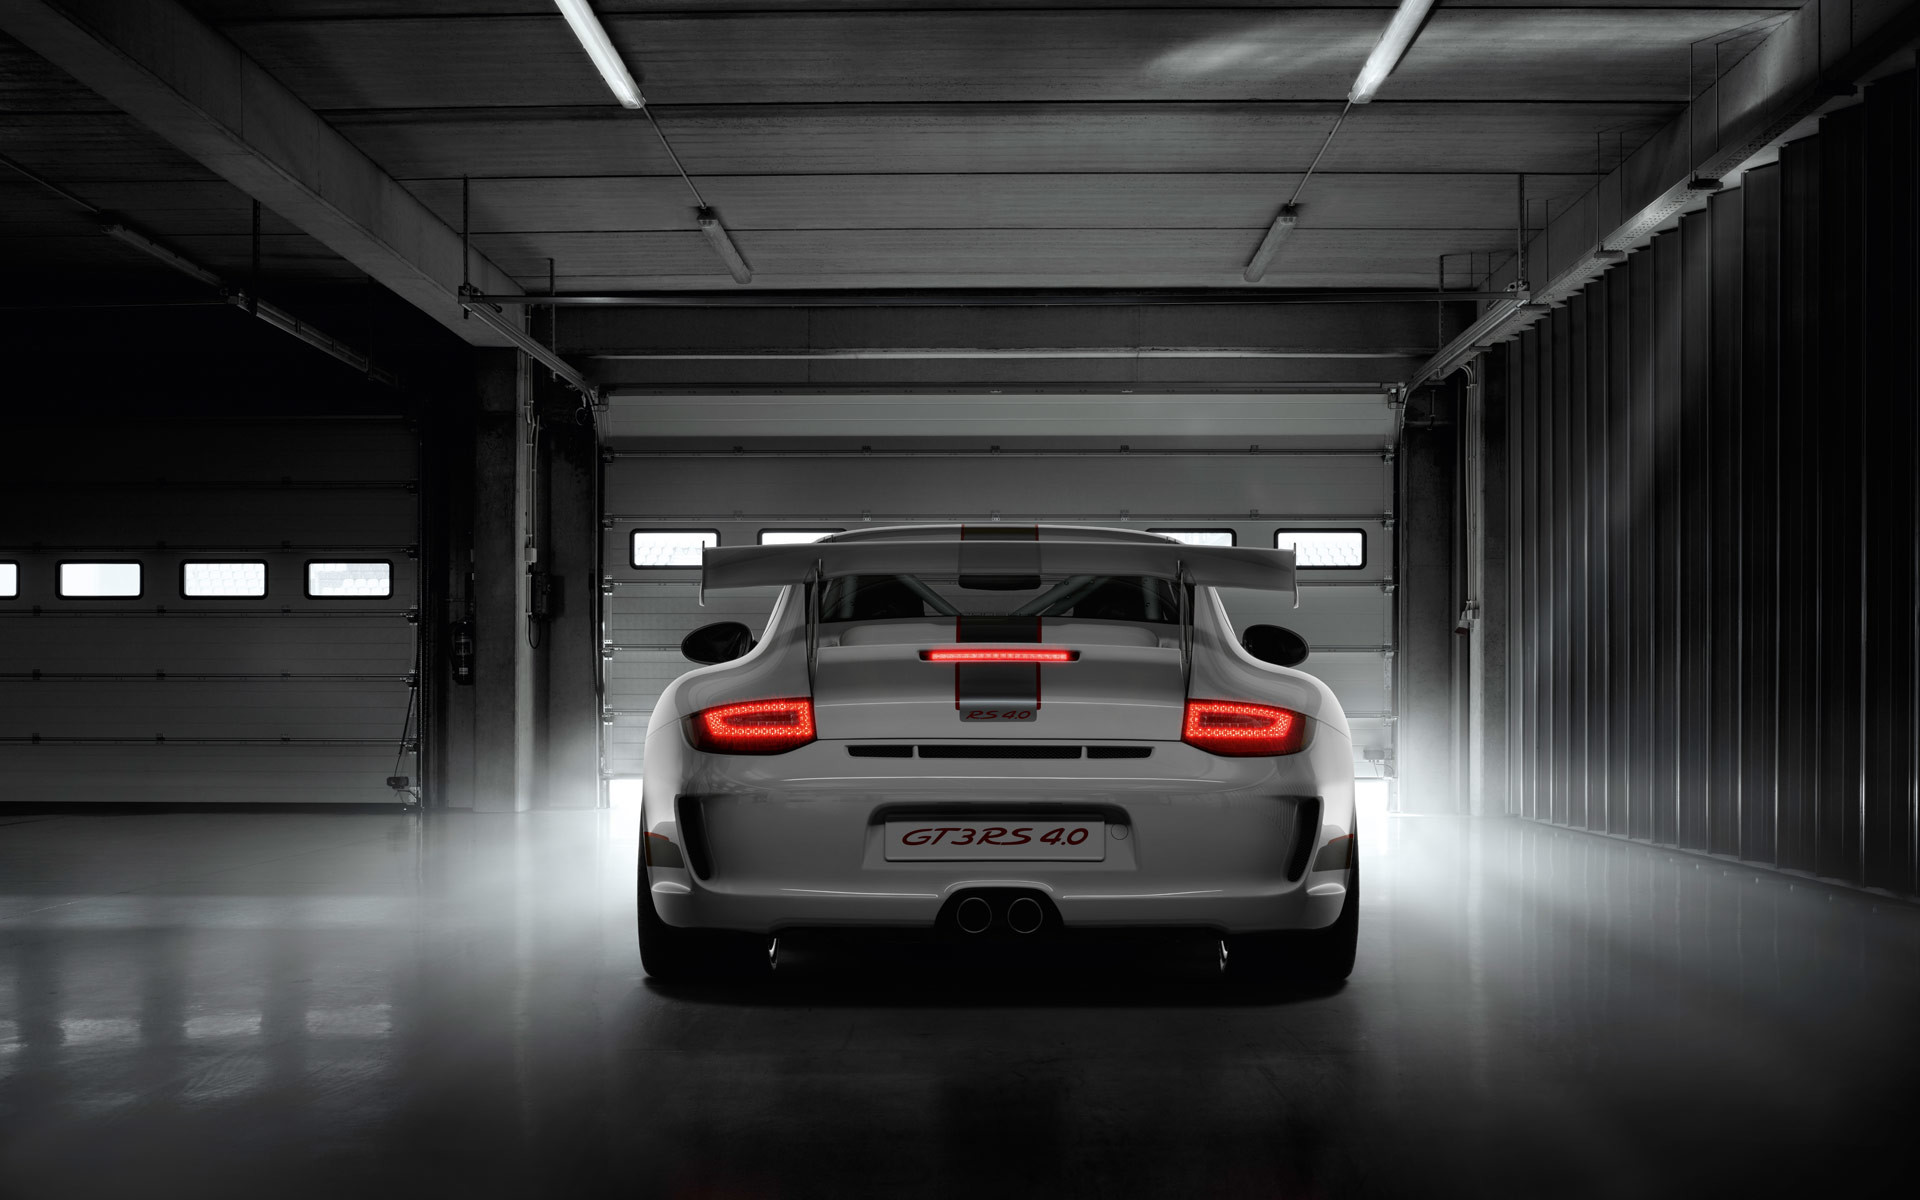 1920x1200 Porsche 911 GT3 Wallpapers | Download Free Desktop Wallpaper Images .